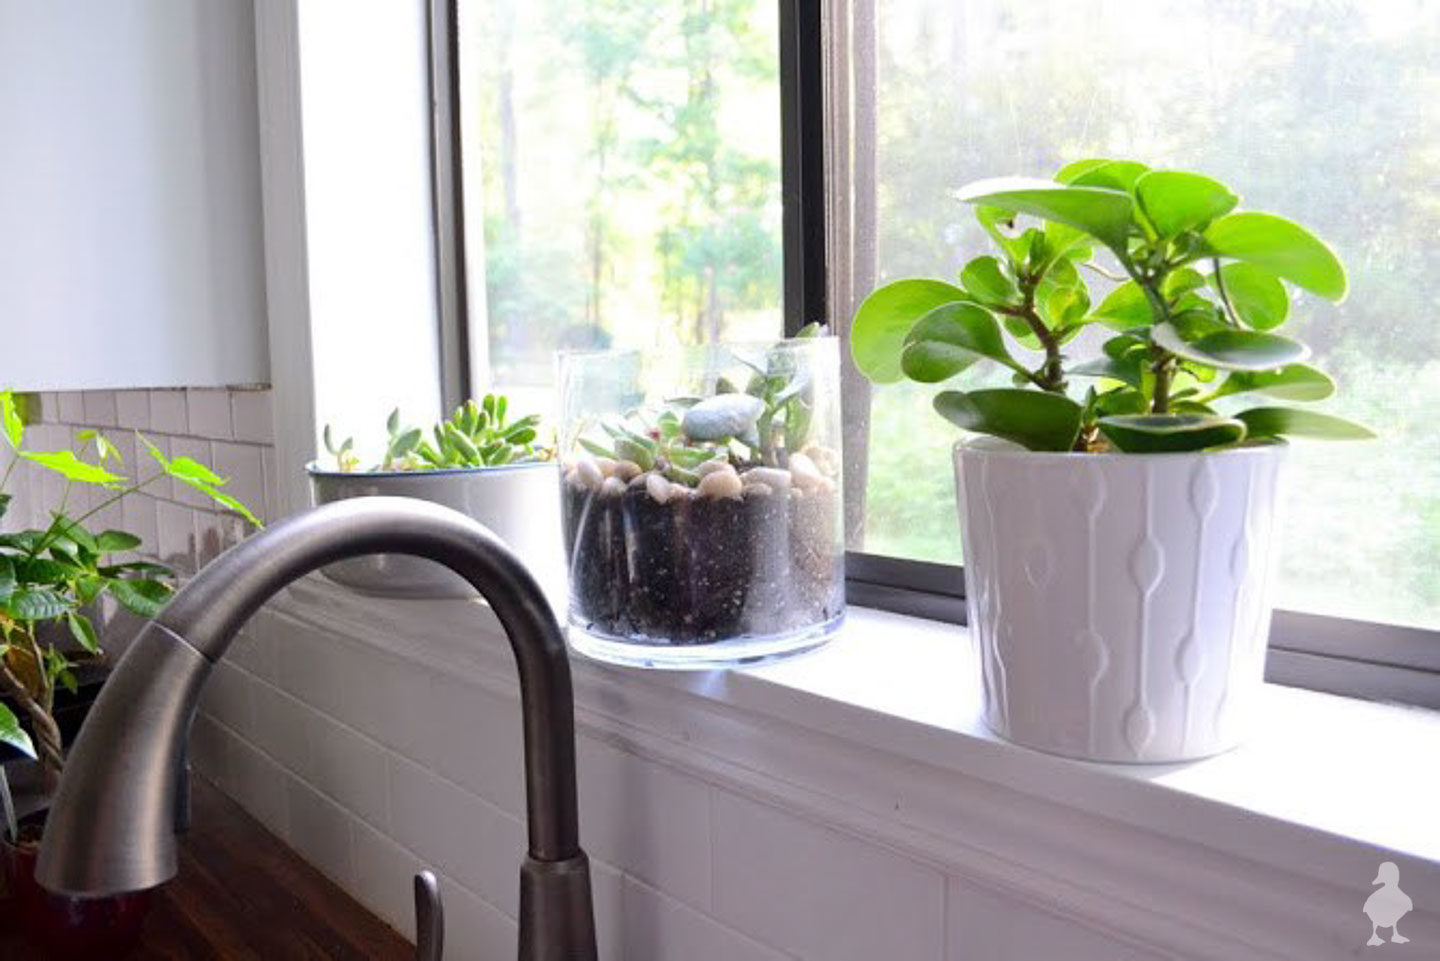 plants and succulents along kitchen sink